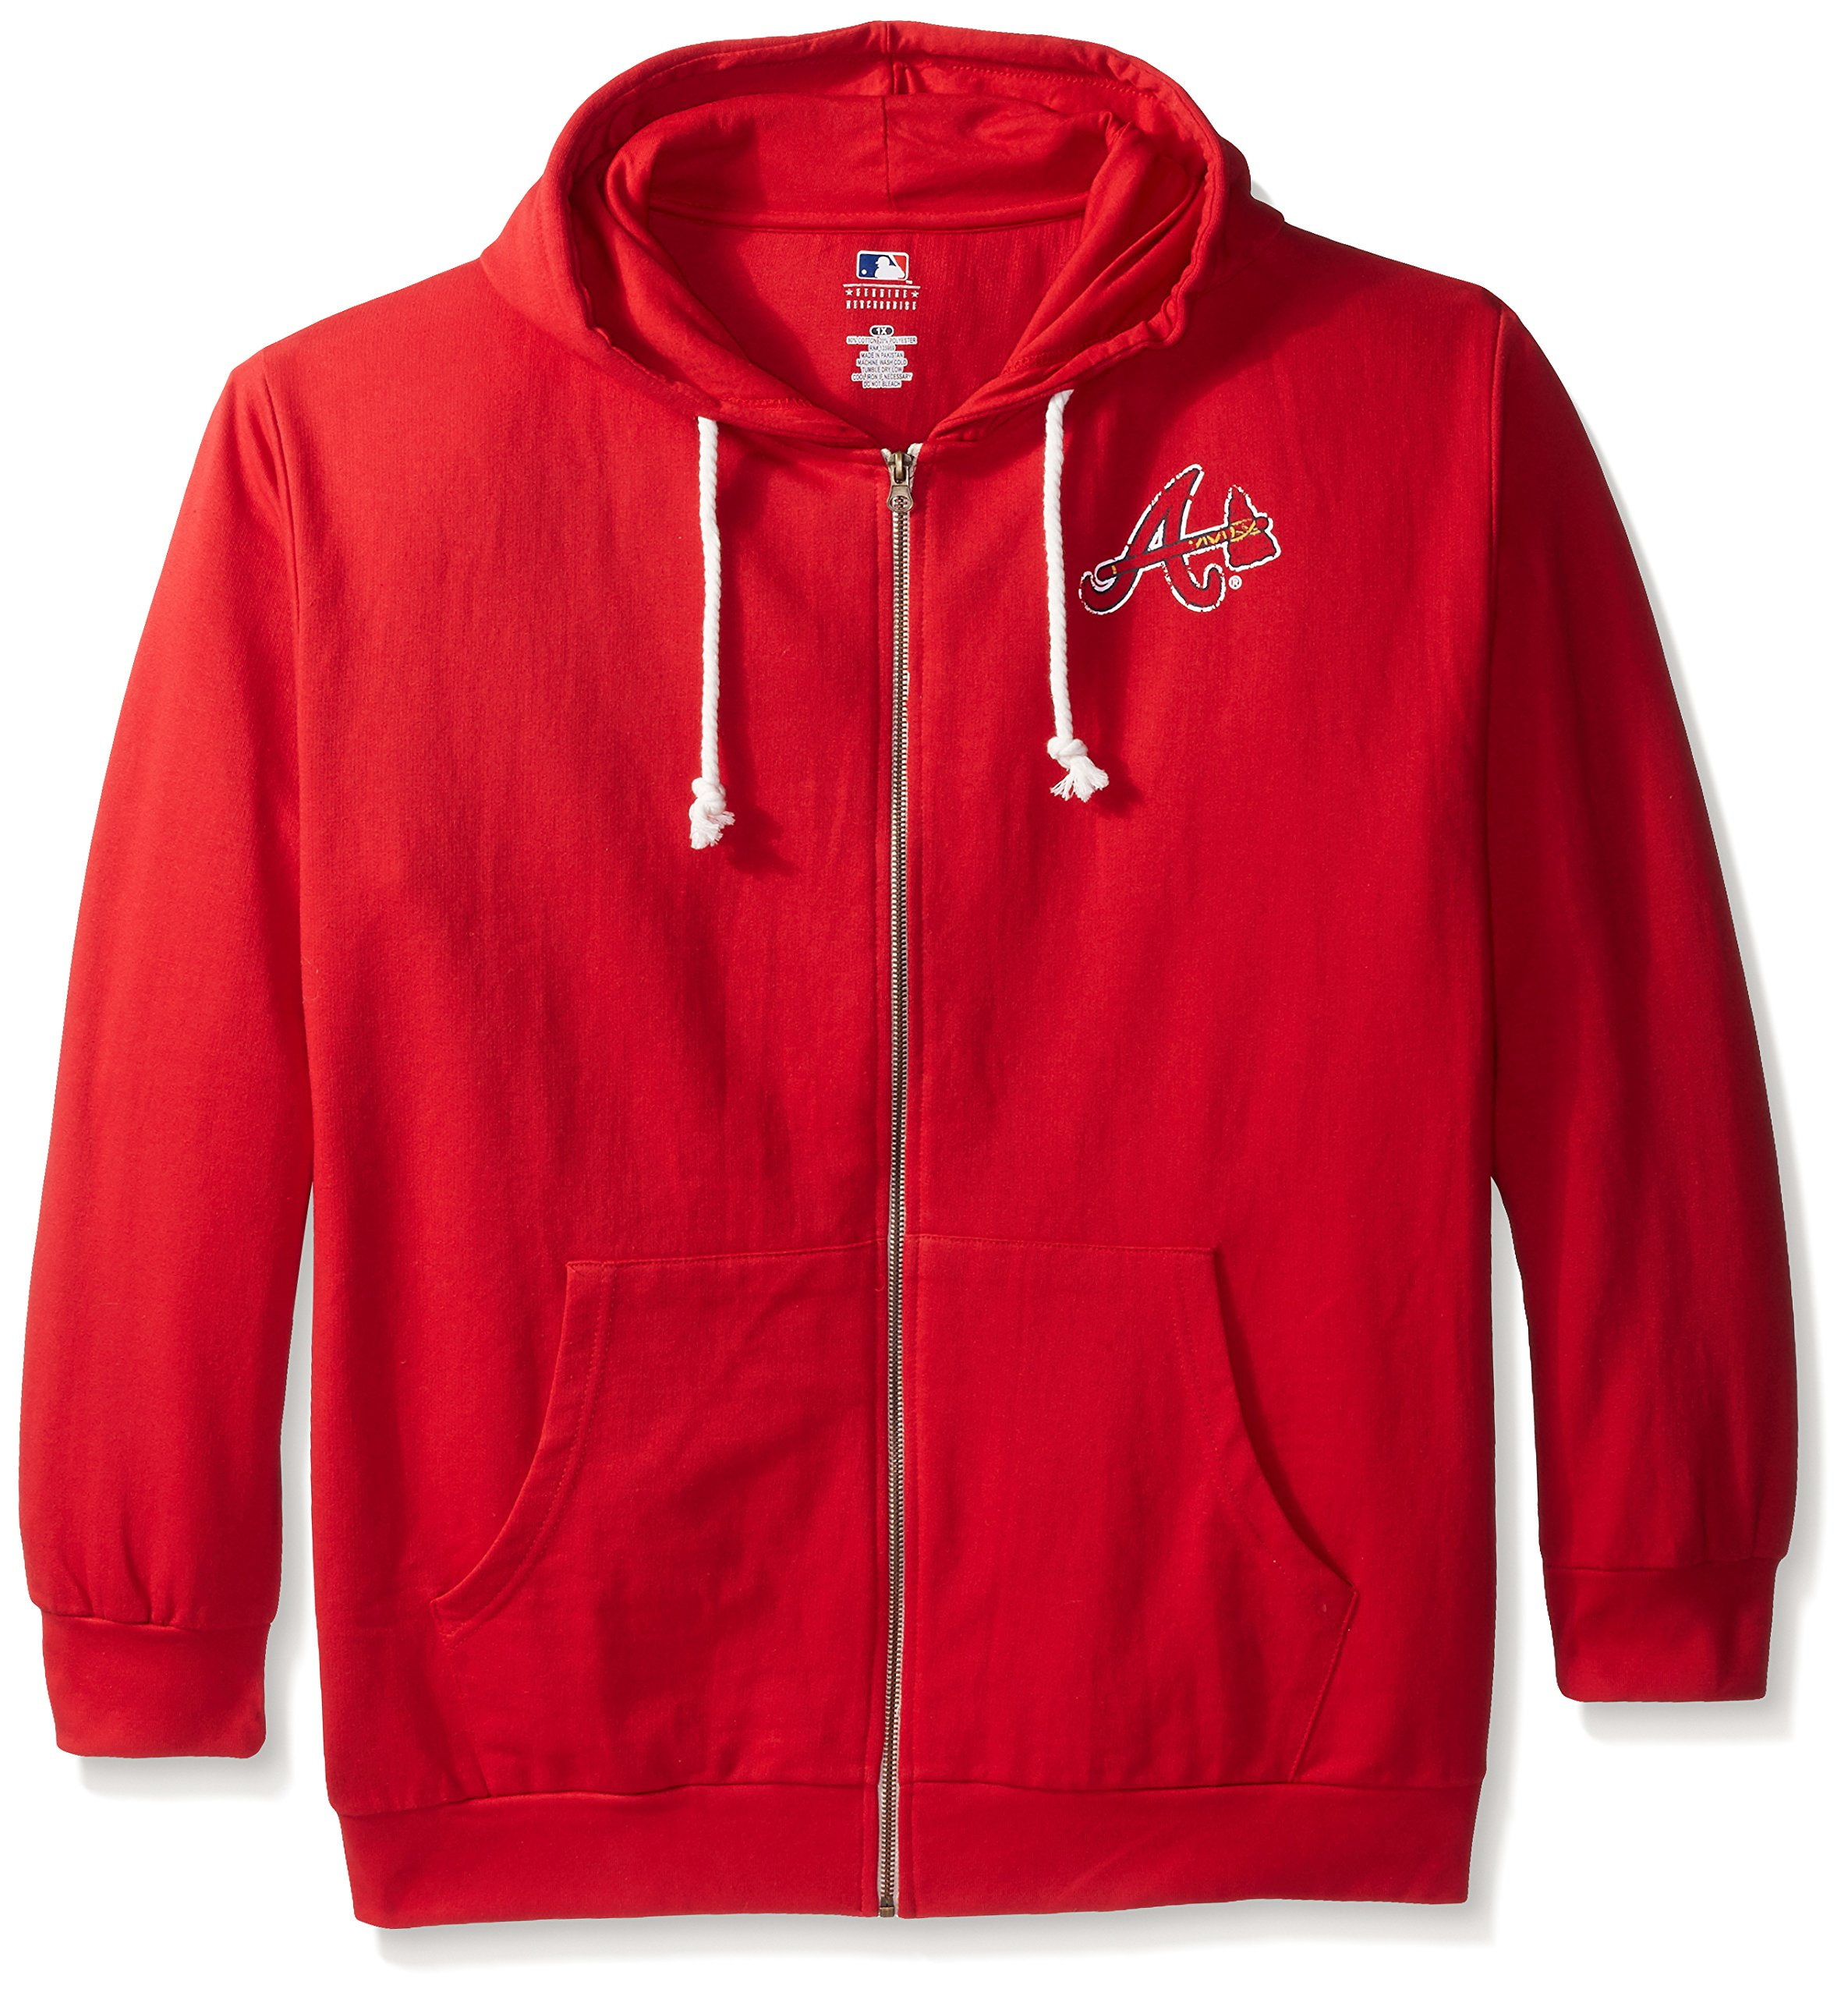 MLB Atlanta Braves Plus Size Zip Hood with Logo, 3X, Red